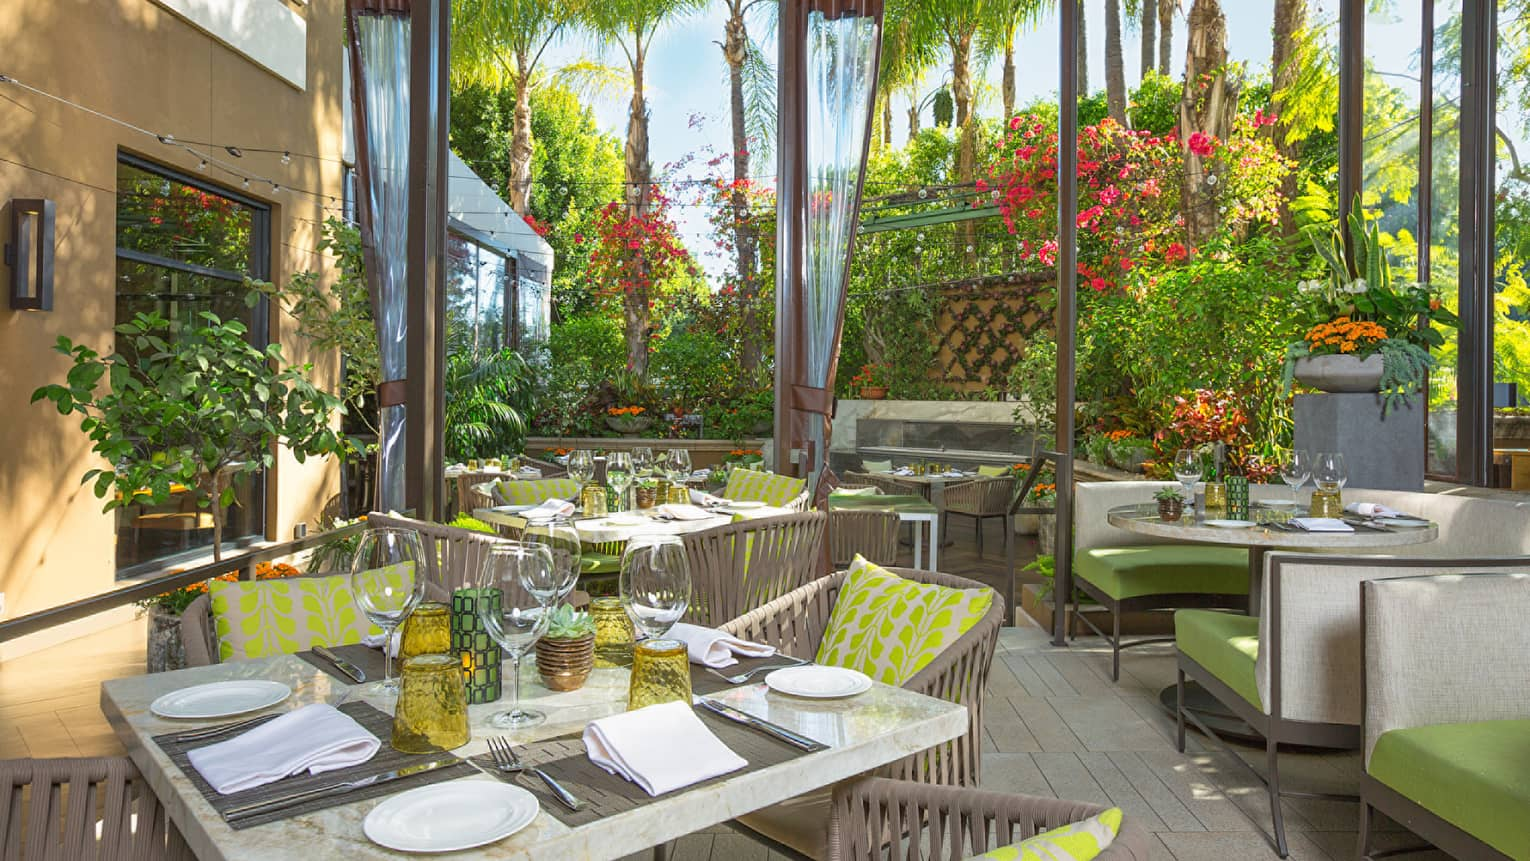 Marble patio tables, bright yellow and green cushions on Culina restaurant garden patio